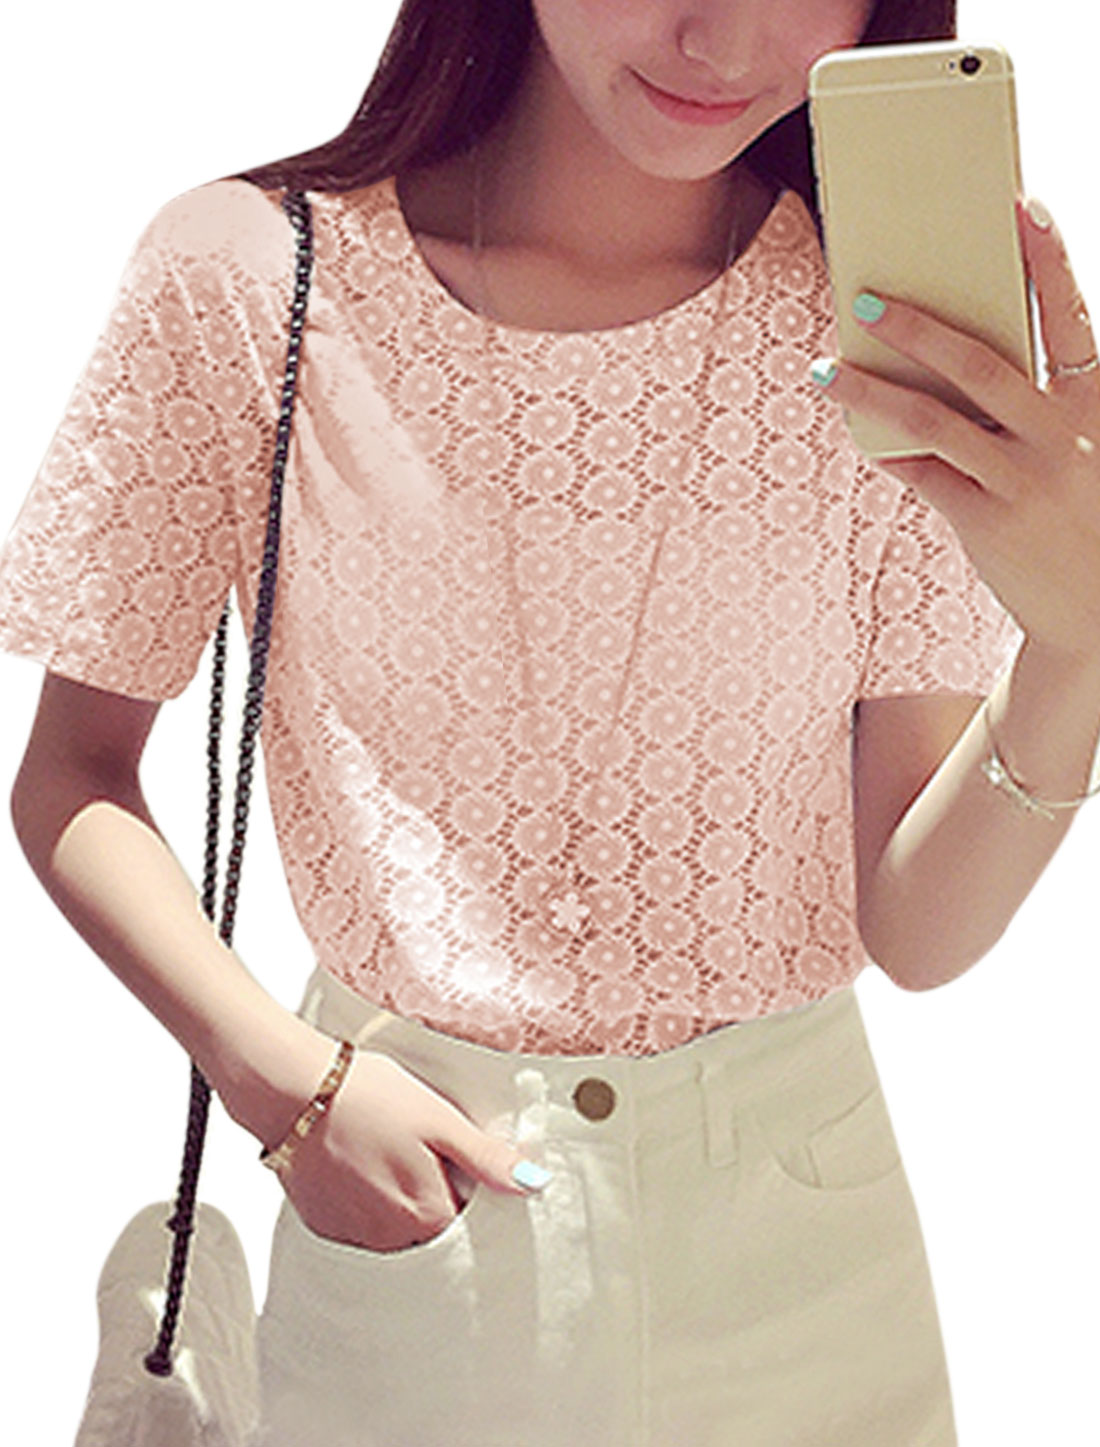 Ladies Short Sleeve Round Neck Casual T-Shirt Top Pale Pink XS